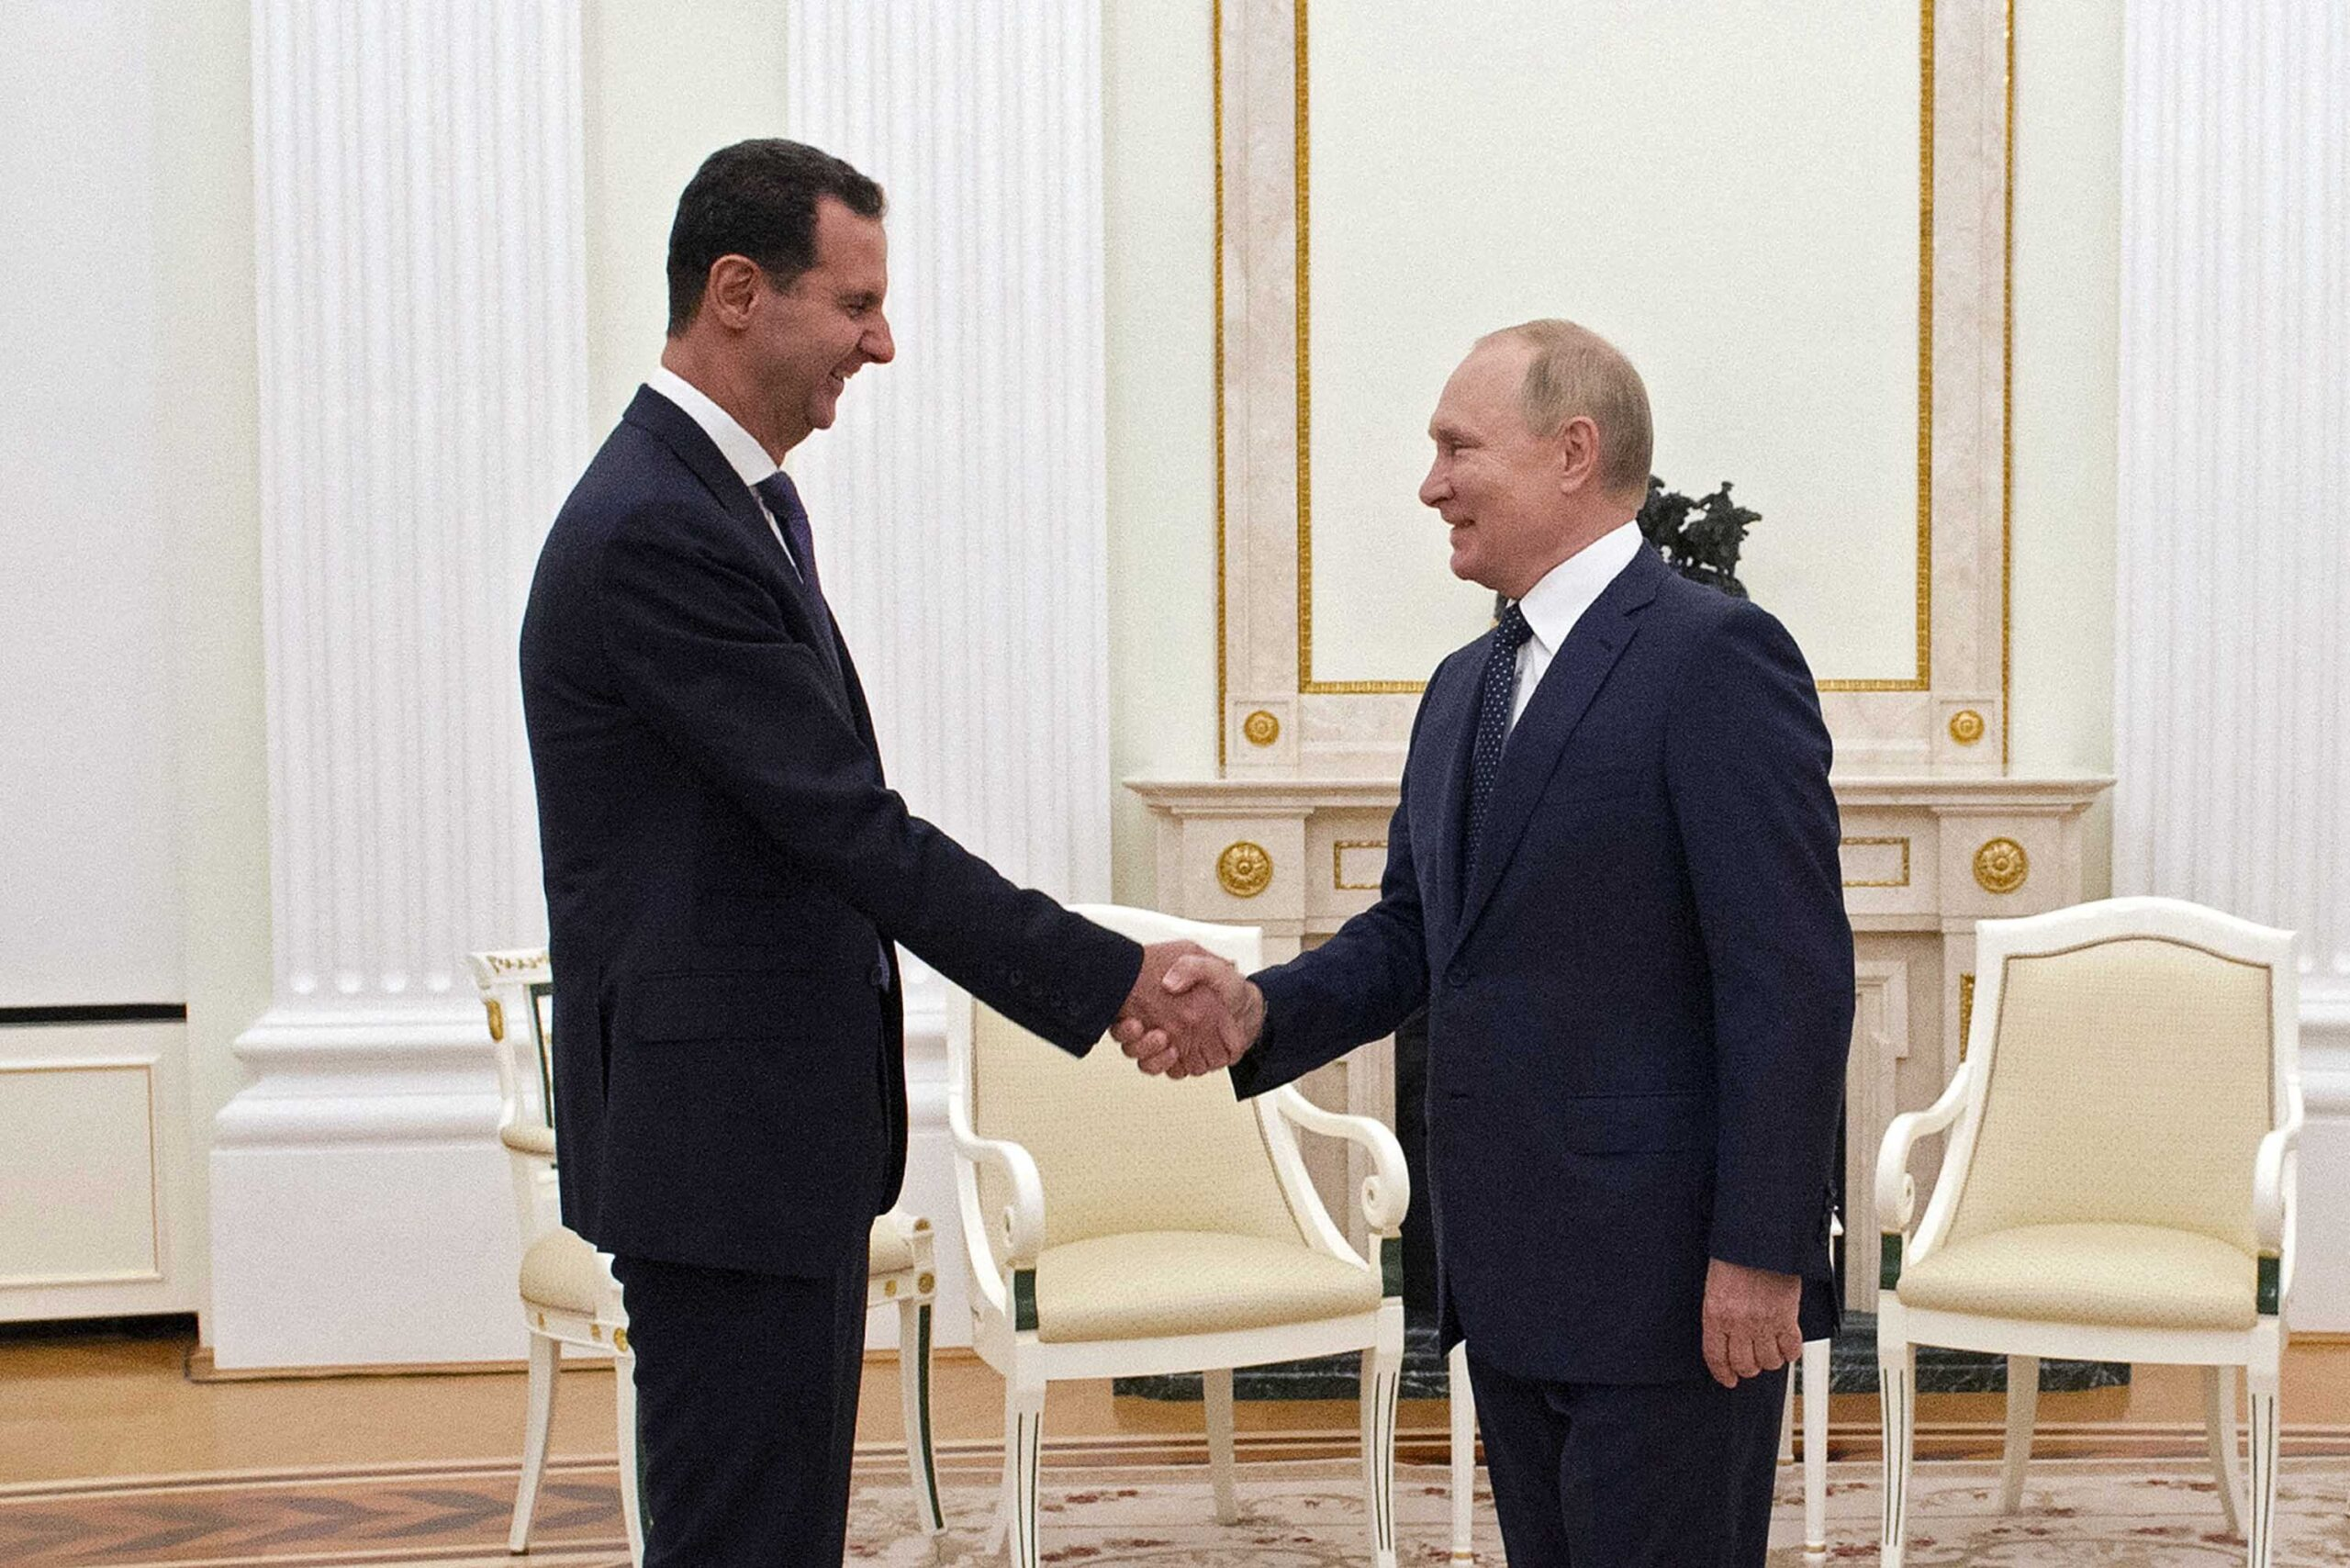 <i>Mikhail Klimentyev/Sputnik/AFP/Getty Images</i><br/>Russian President Vladimir Putin is quarantining after several people in his inner circle tested positive for Covid-19. Putin met Syrian President Bashar al-Assad in Moscow on Monday.